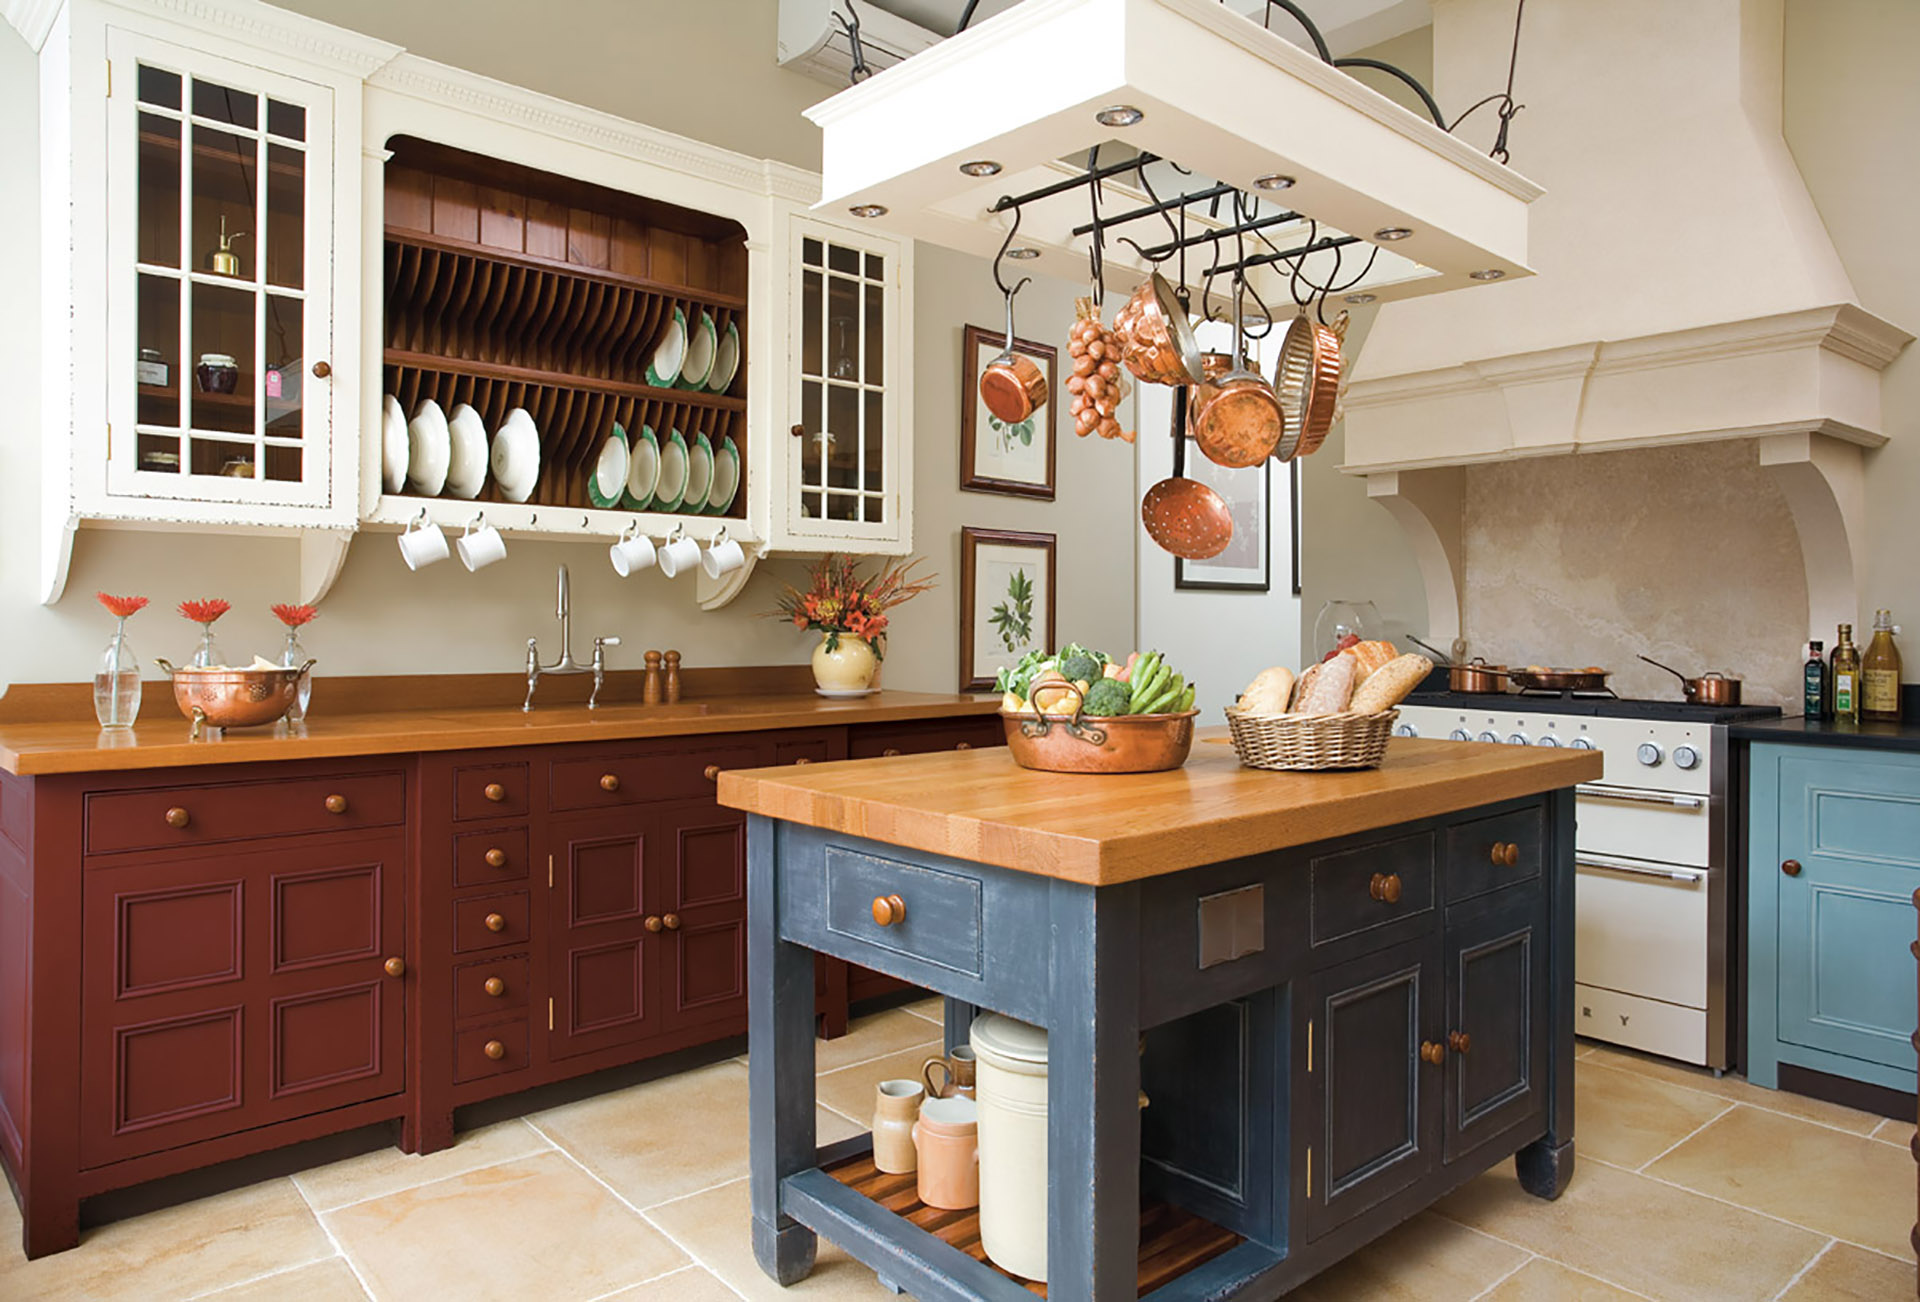 Best Kitchen Ever 13 Tips For The Most Organized Kitchen Ever